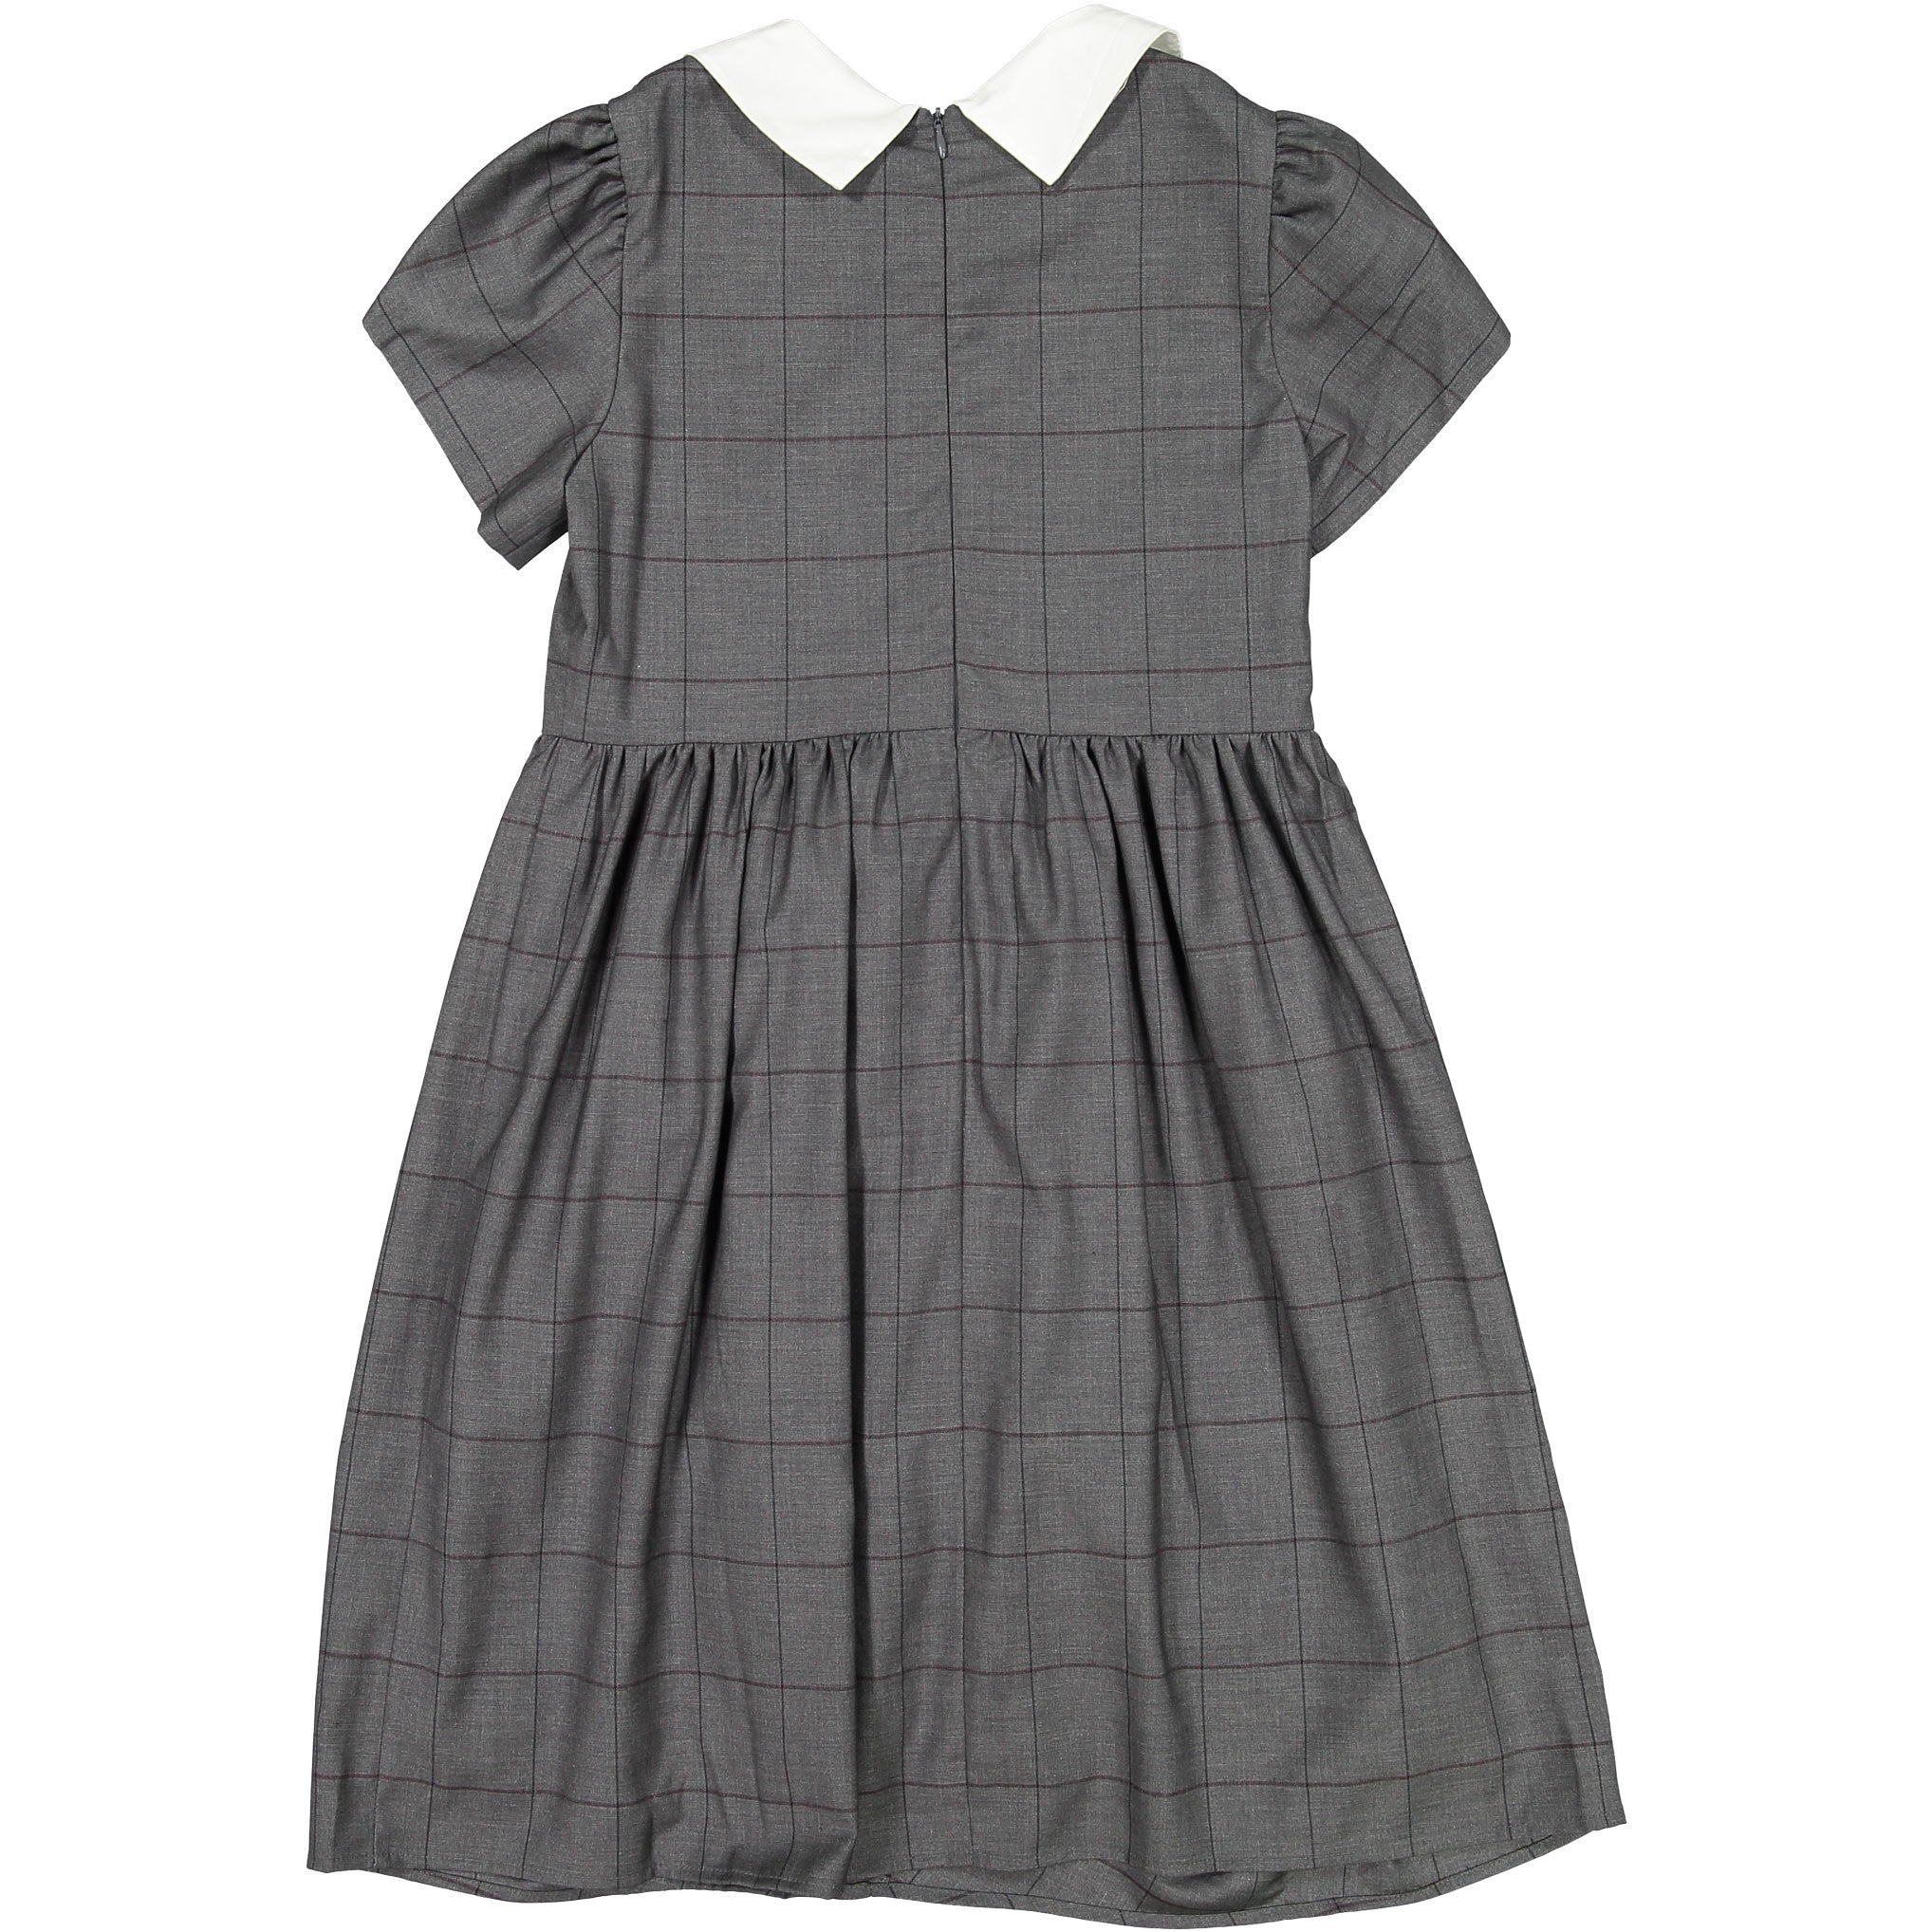 Ava & Lu Grey Peter Pan Dress - Ladida